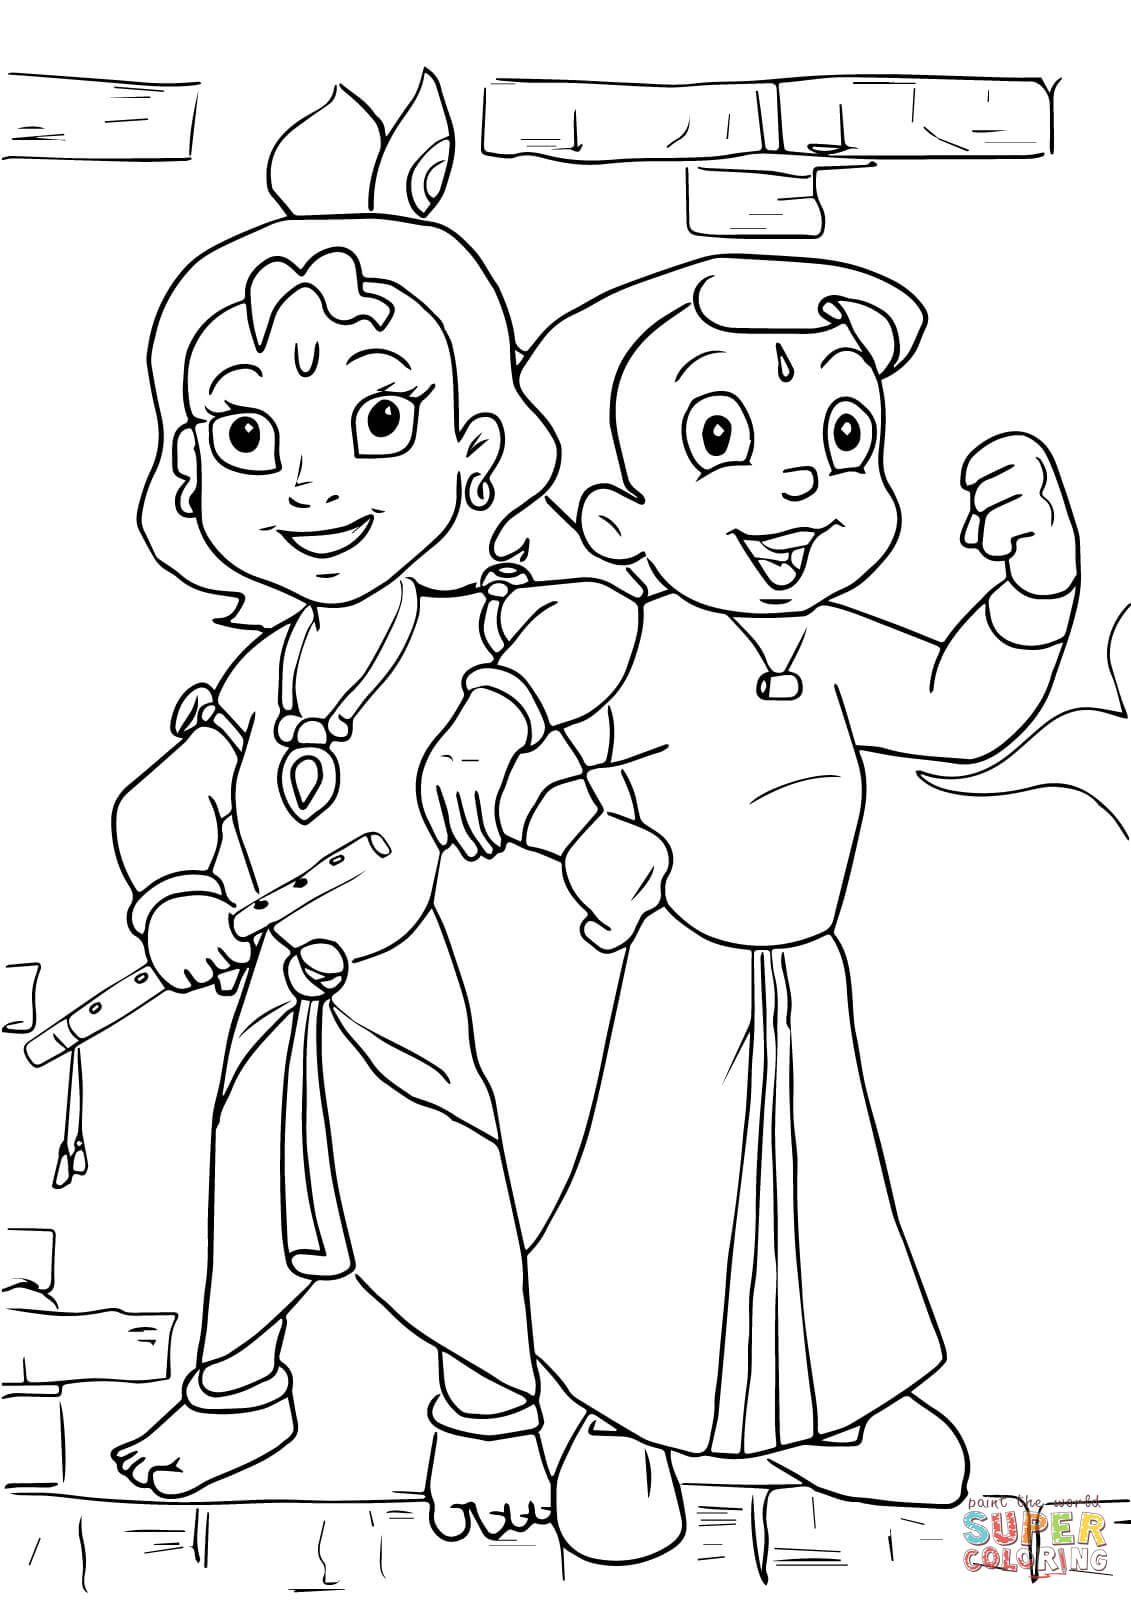 coloring pages of krishna krishna play his flute while radha is dancing coloring krishna coloring of pages